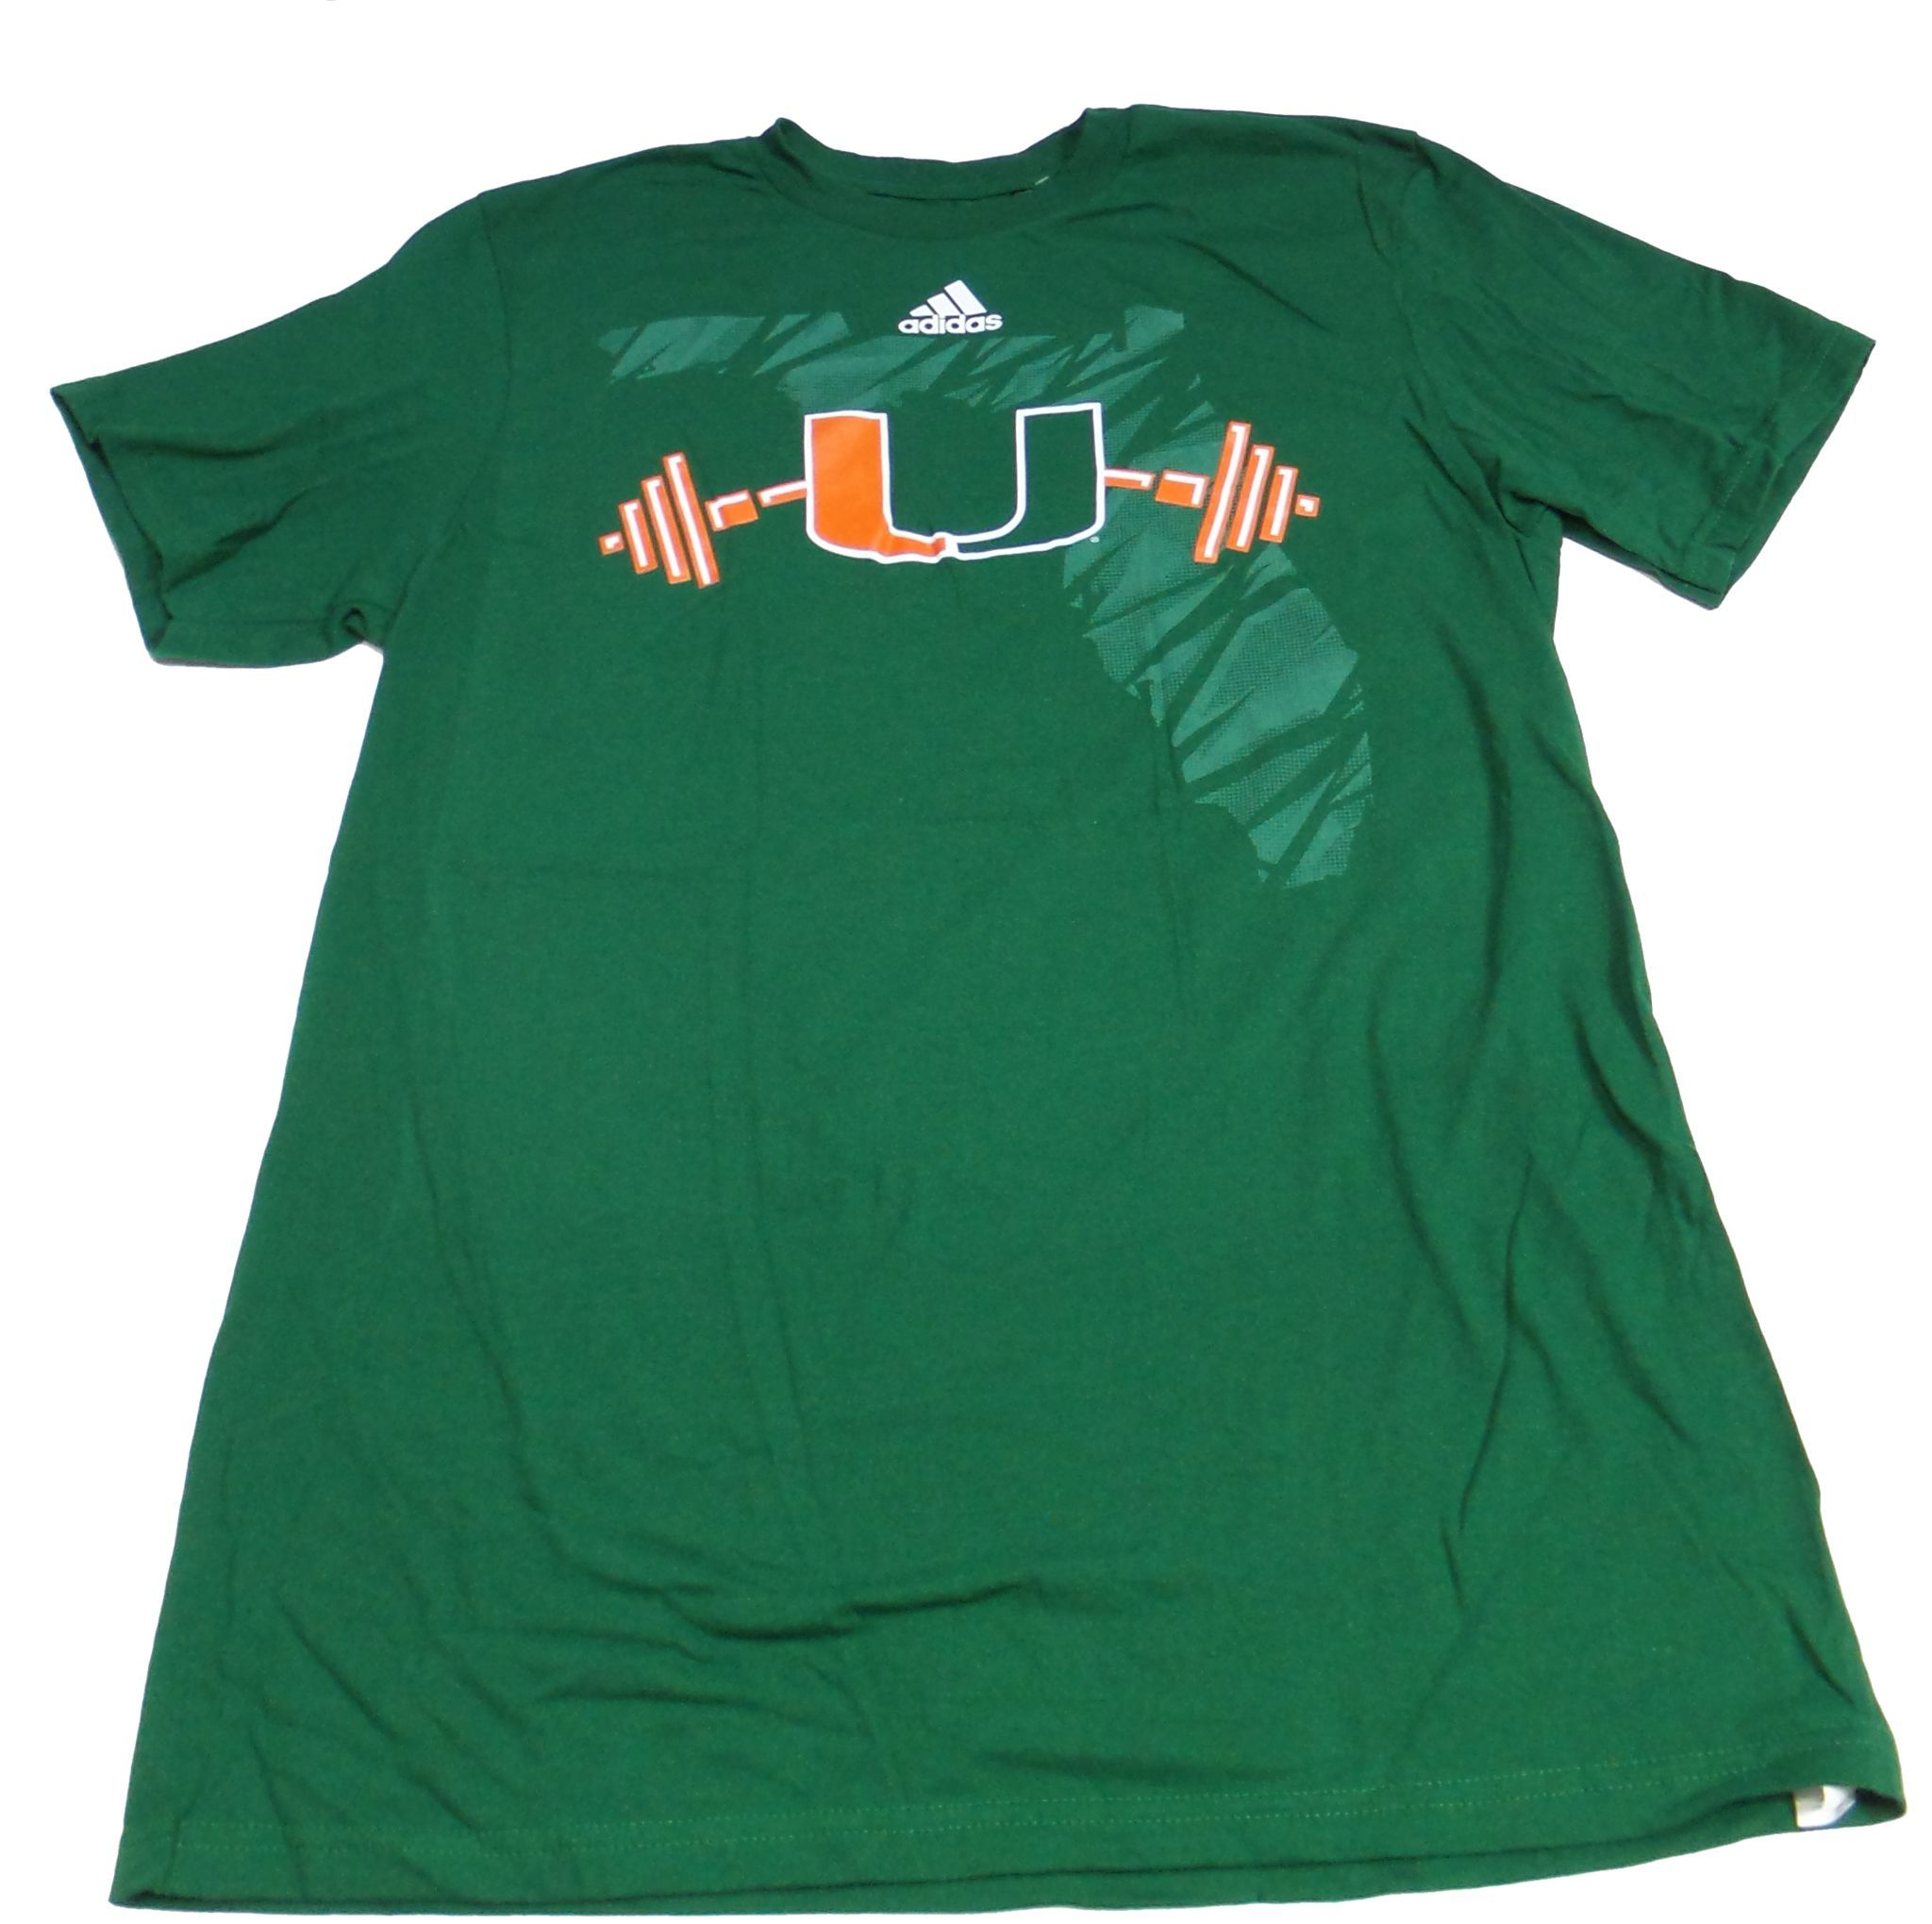 0a982c762ac0 Team pattern ugly sweater Officially Licensed Miami Hurricanes T-Shirt